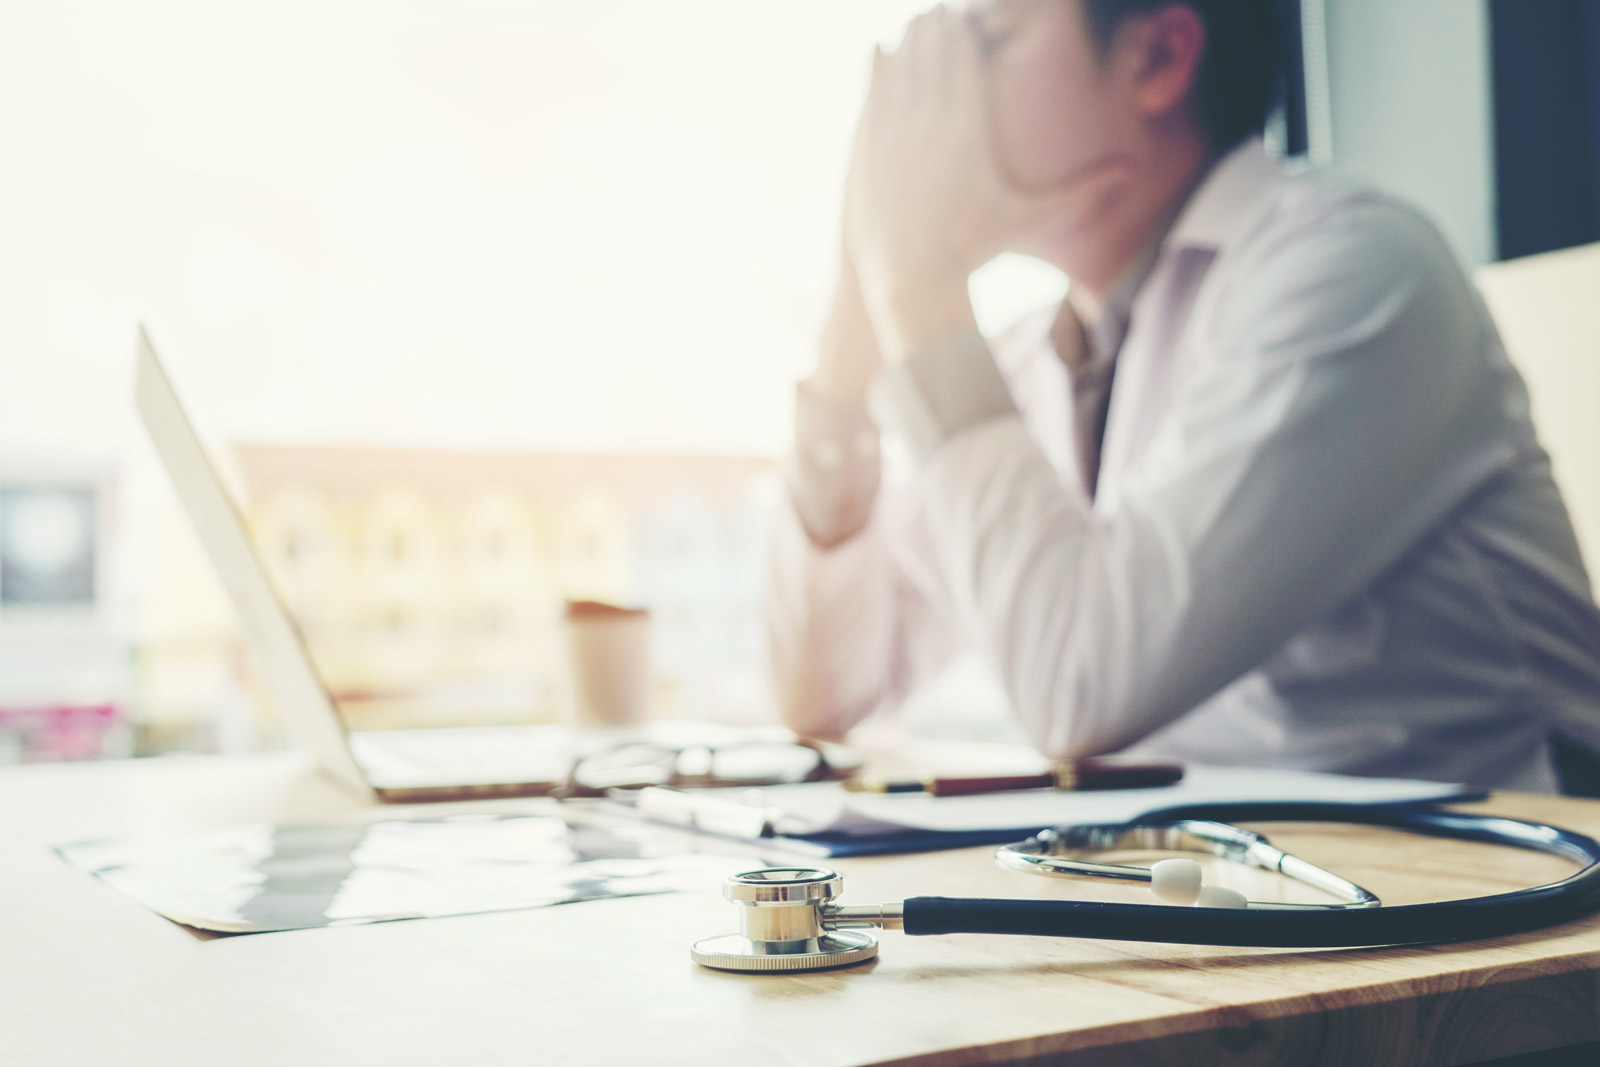 Using Tech to Improve the Provider Journey and Decrease Burnout